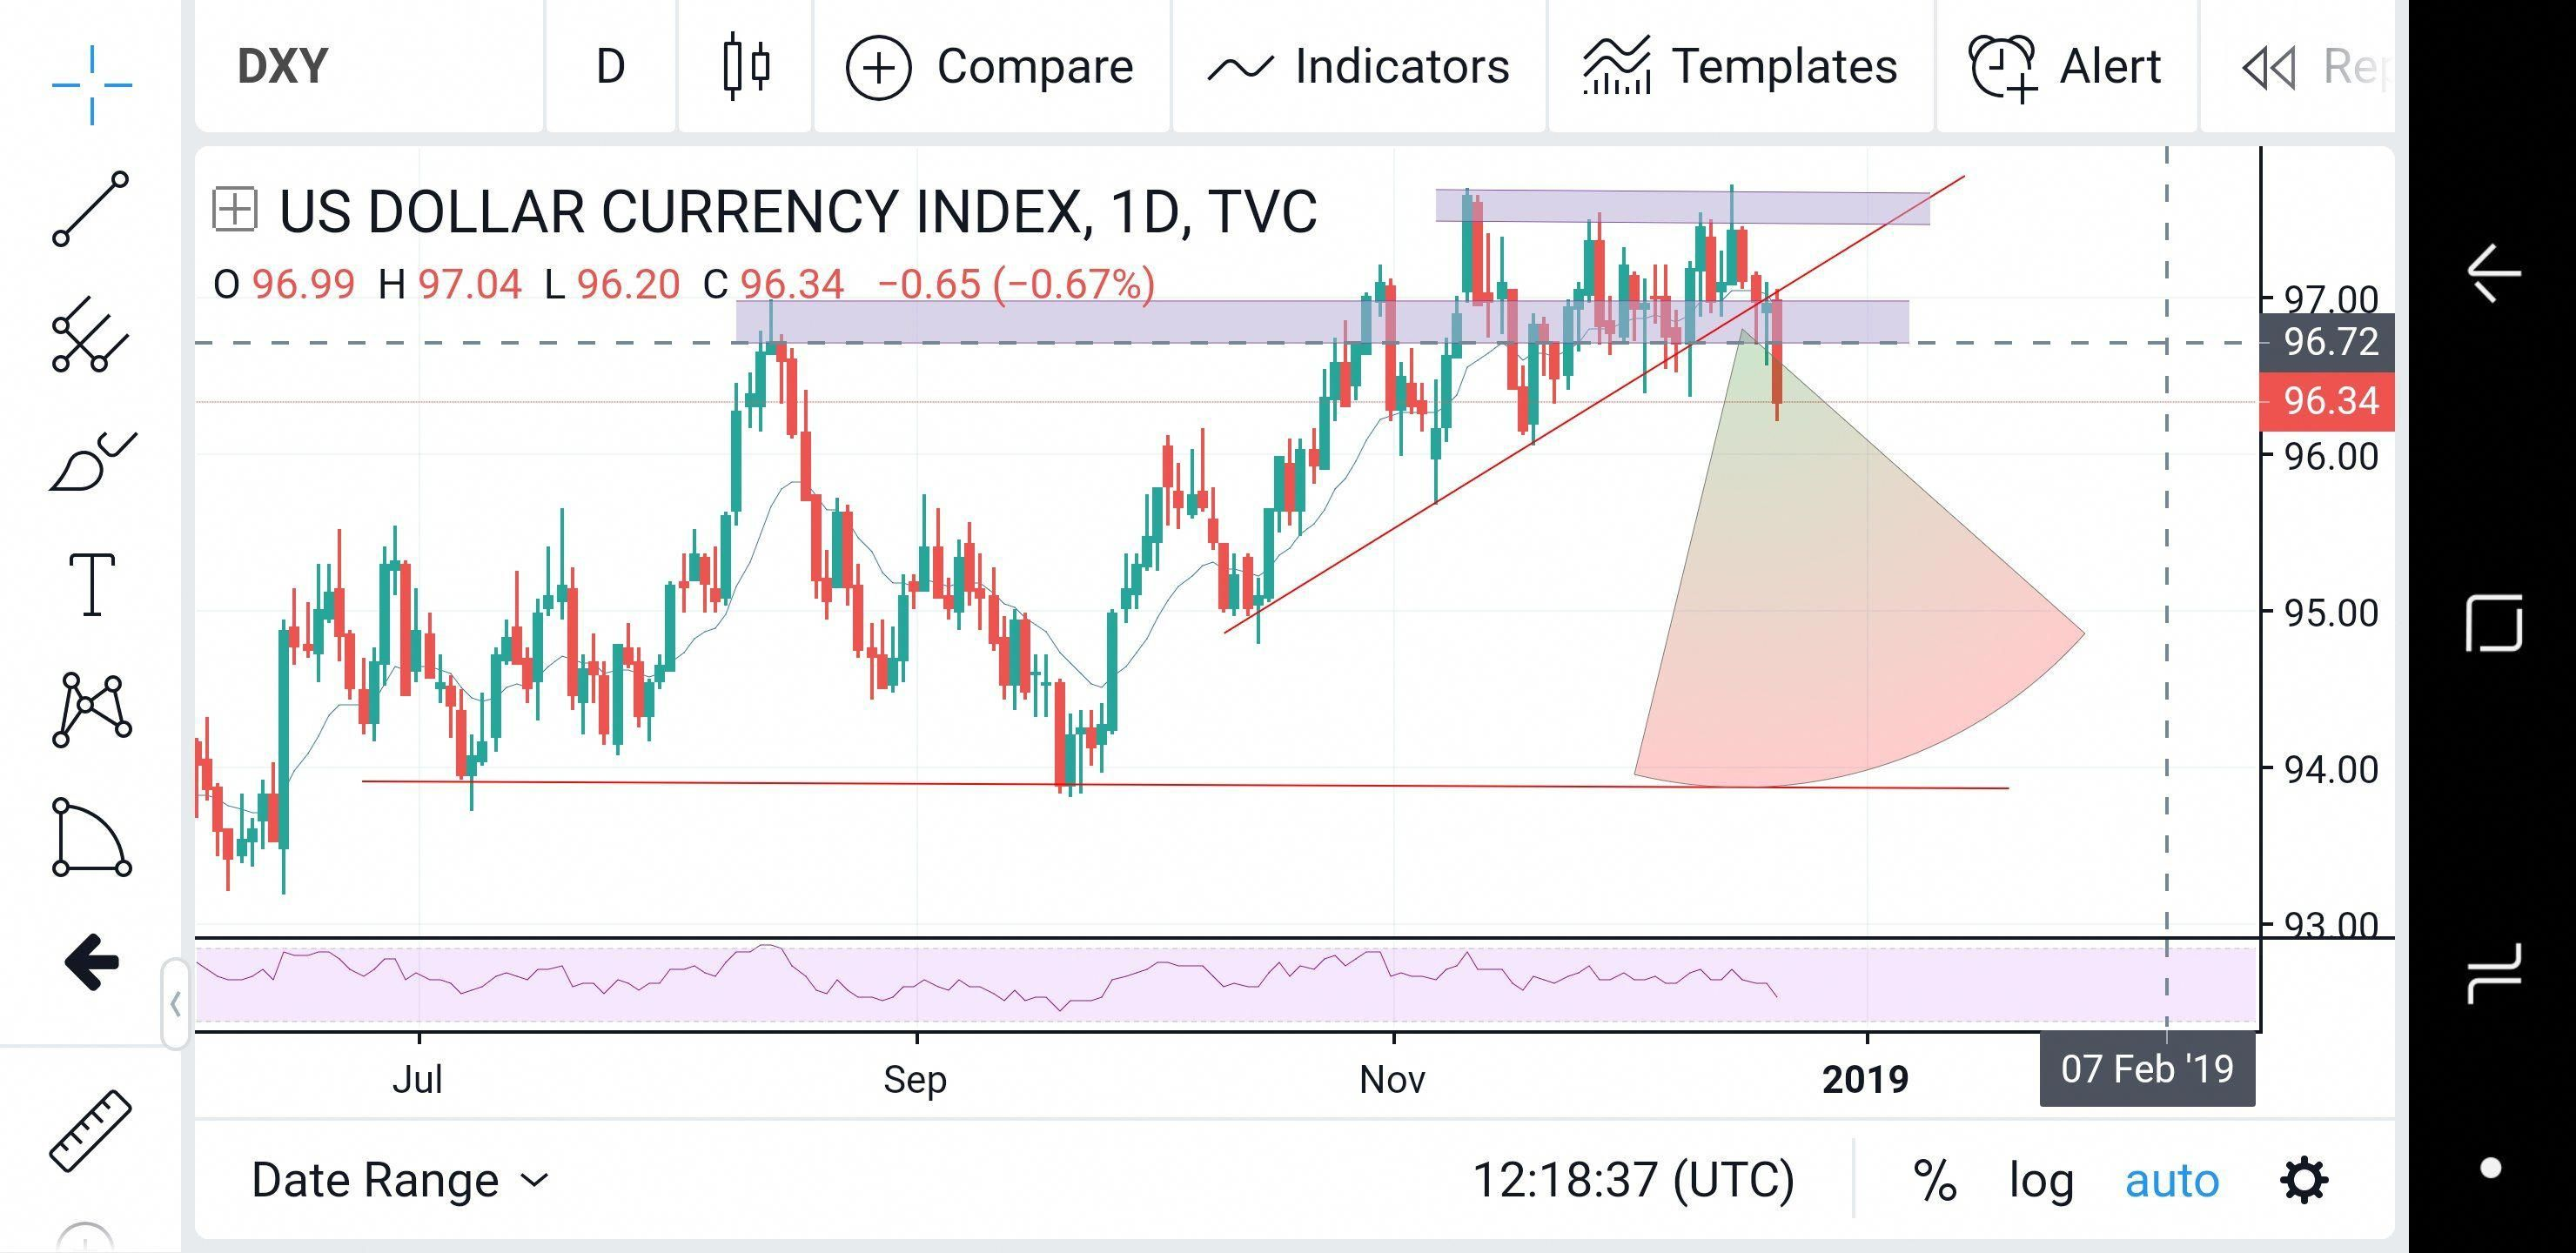 Long Term Usd Outlook Dxy Daily Chart Forex Howtotradeforex